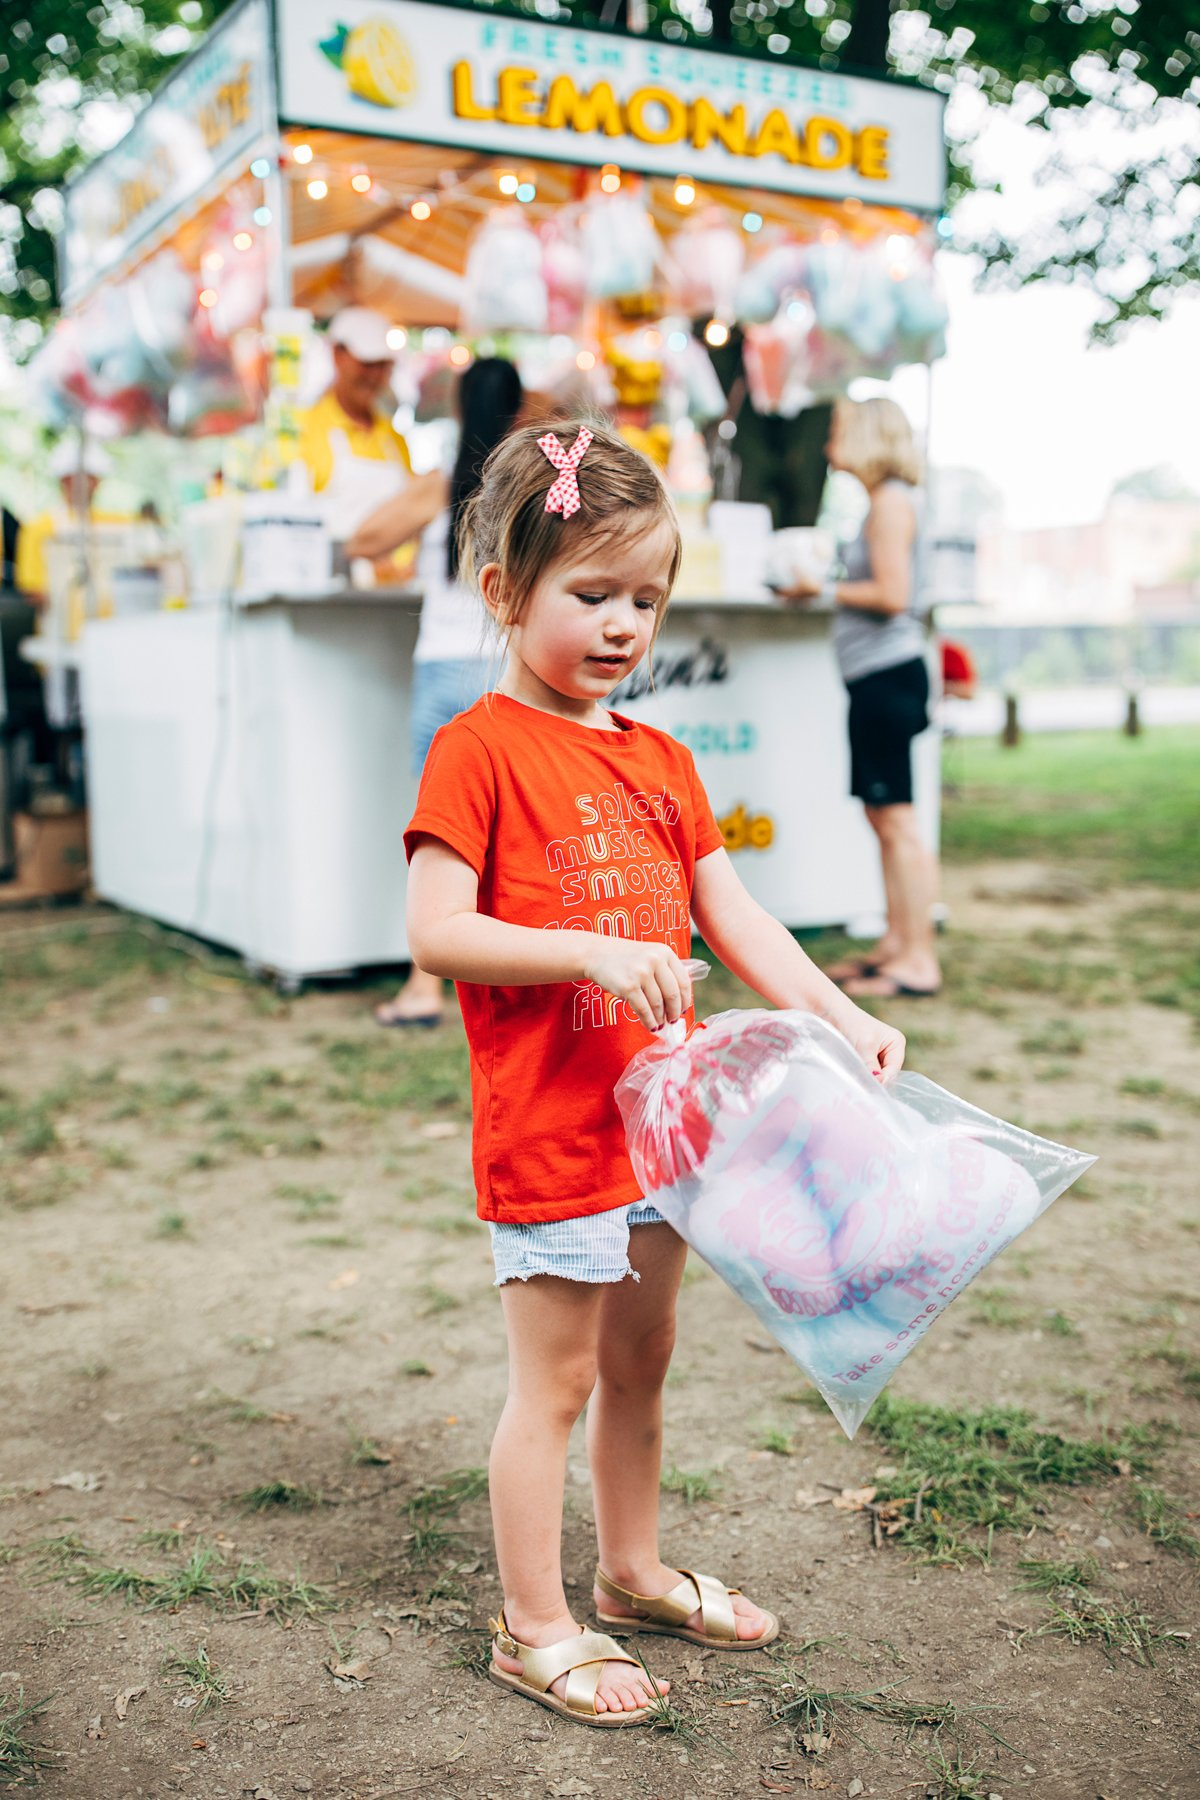 walkinlove_fourthofjuly_lititzspringspark_2018-34.jpg